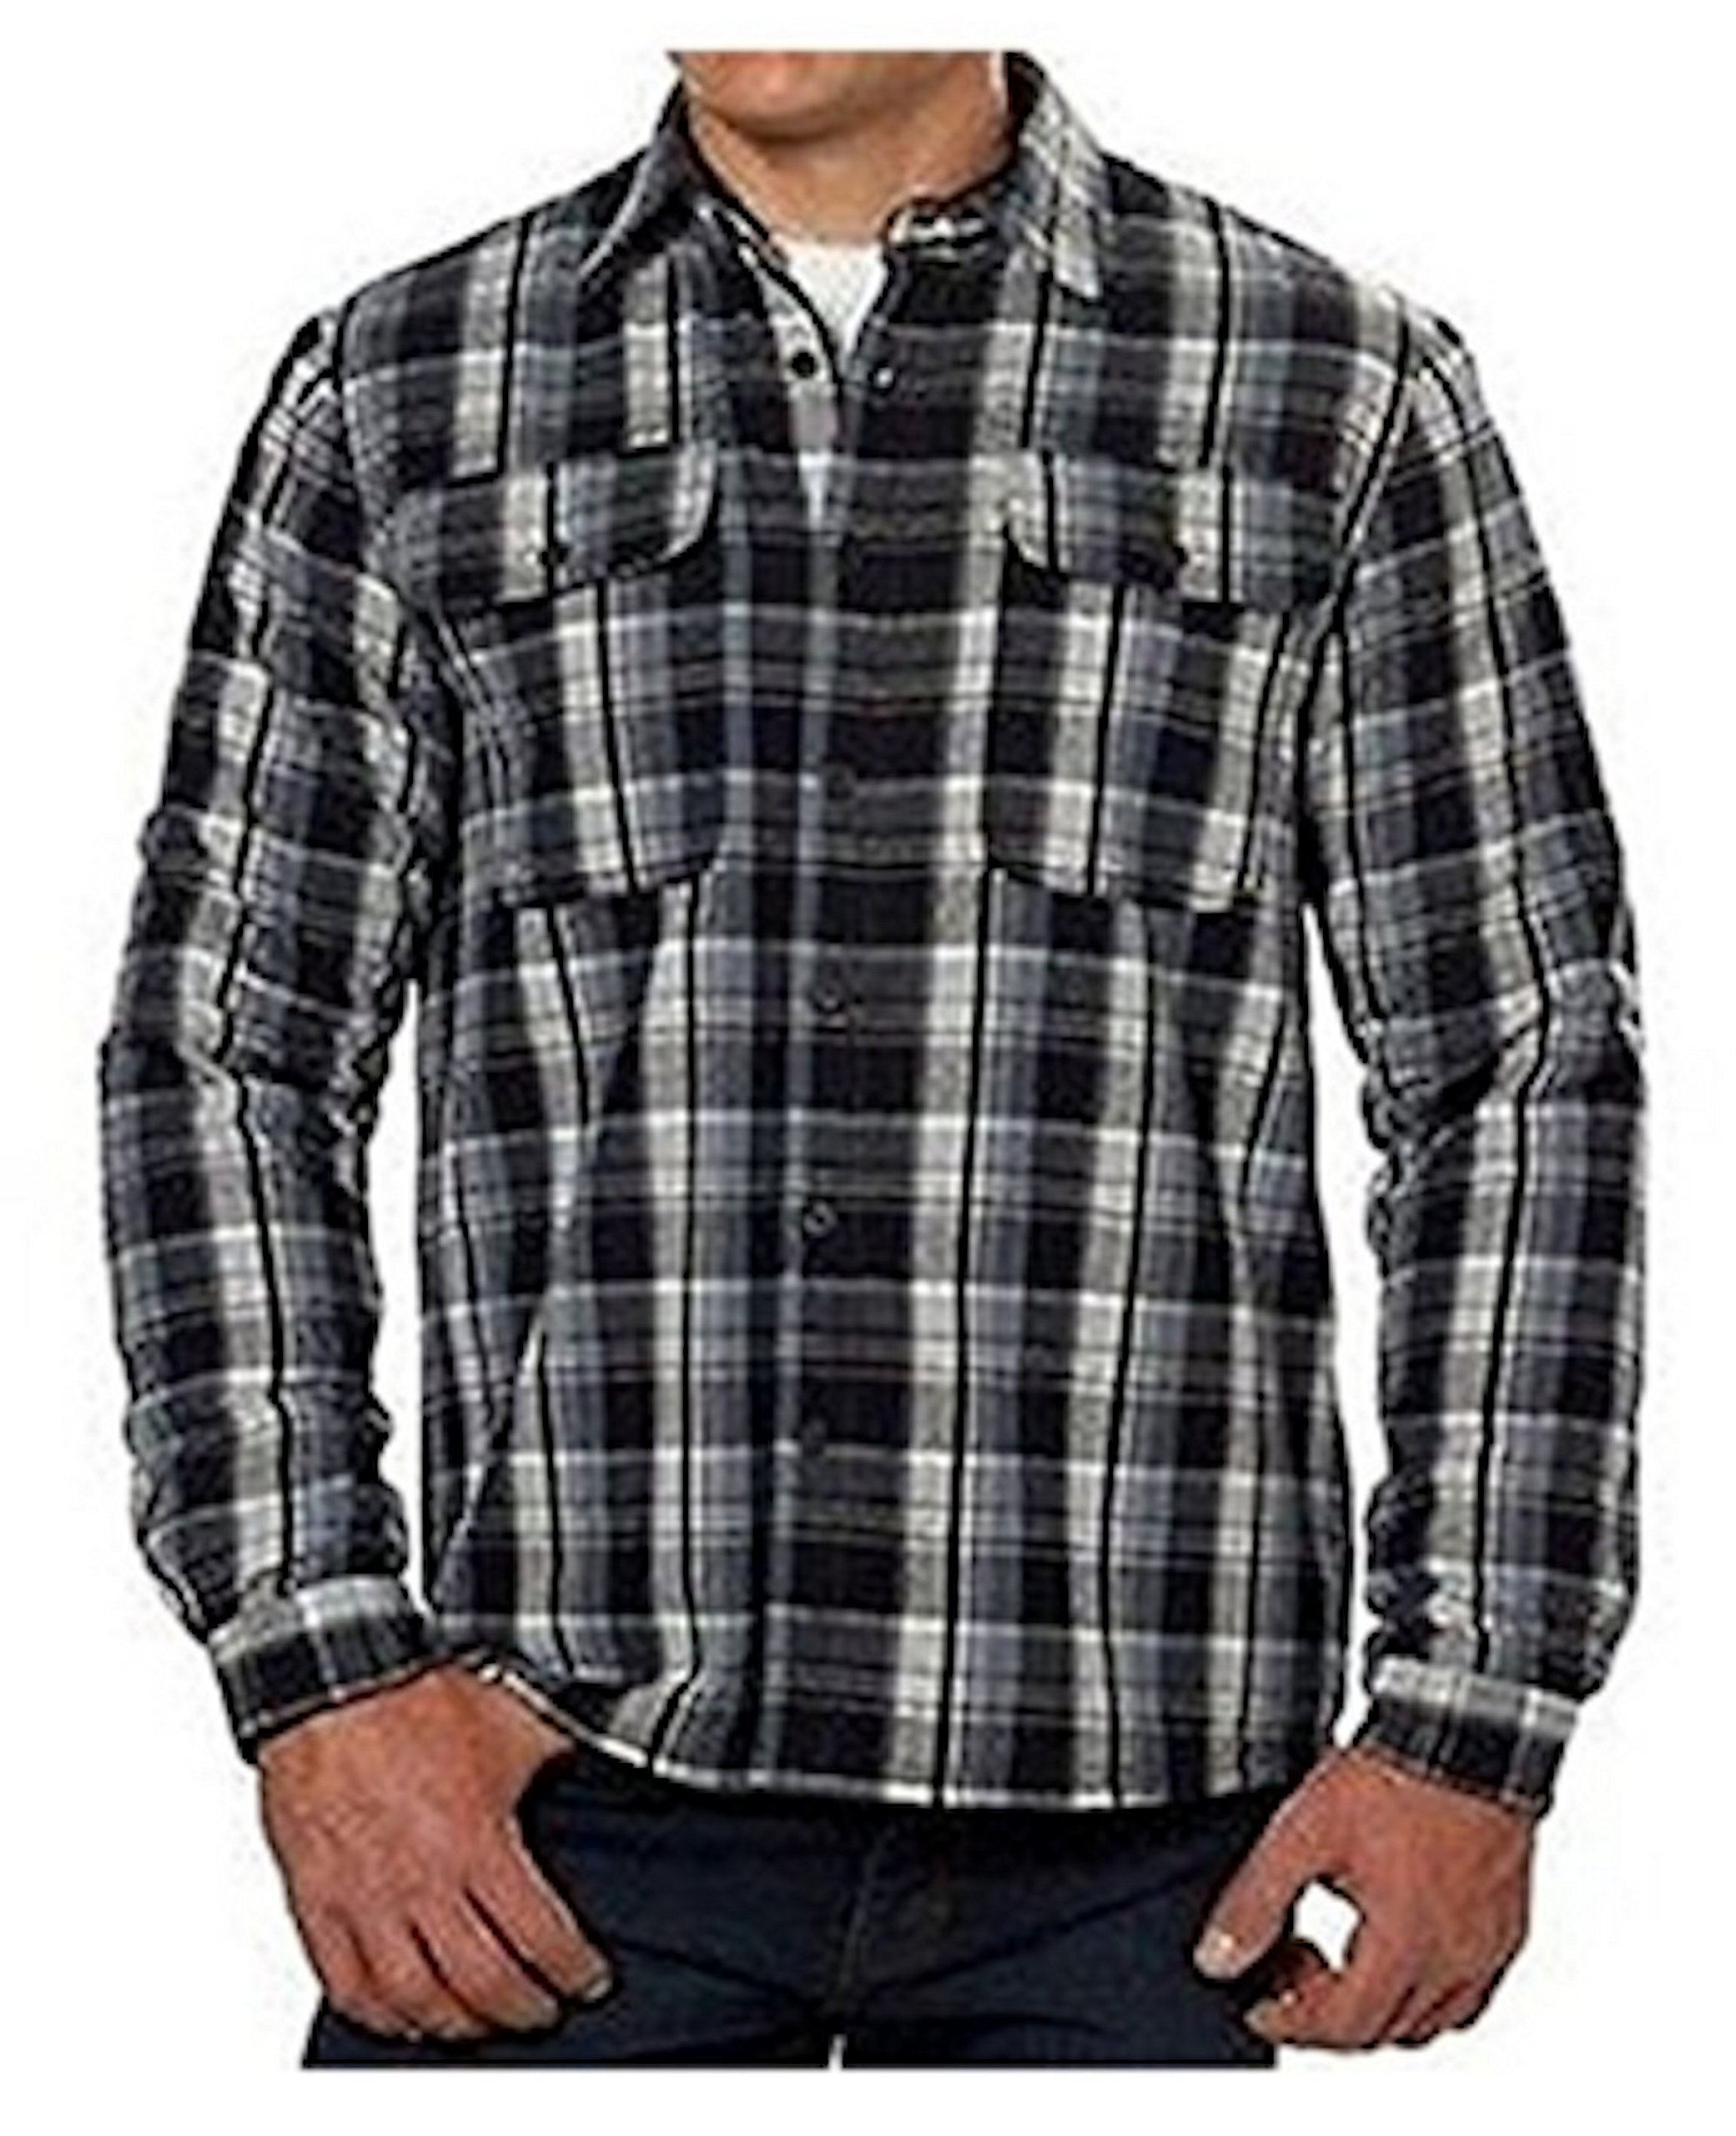 Boston Traders Men's Flannel Jacket Shirt with Fleece Lining- Black White-Large